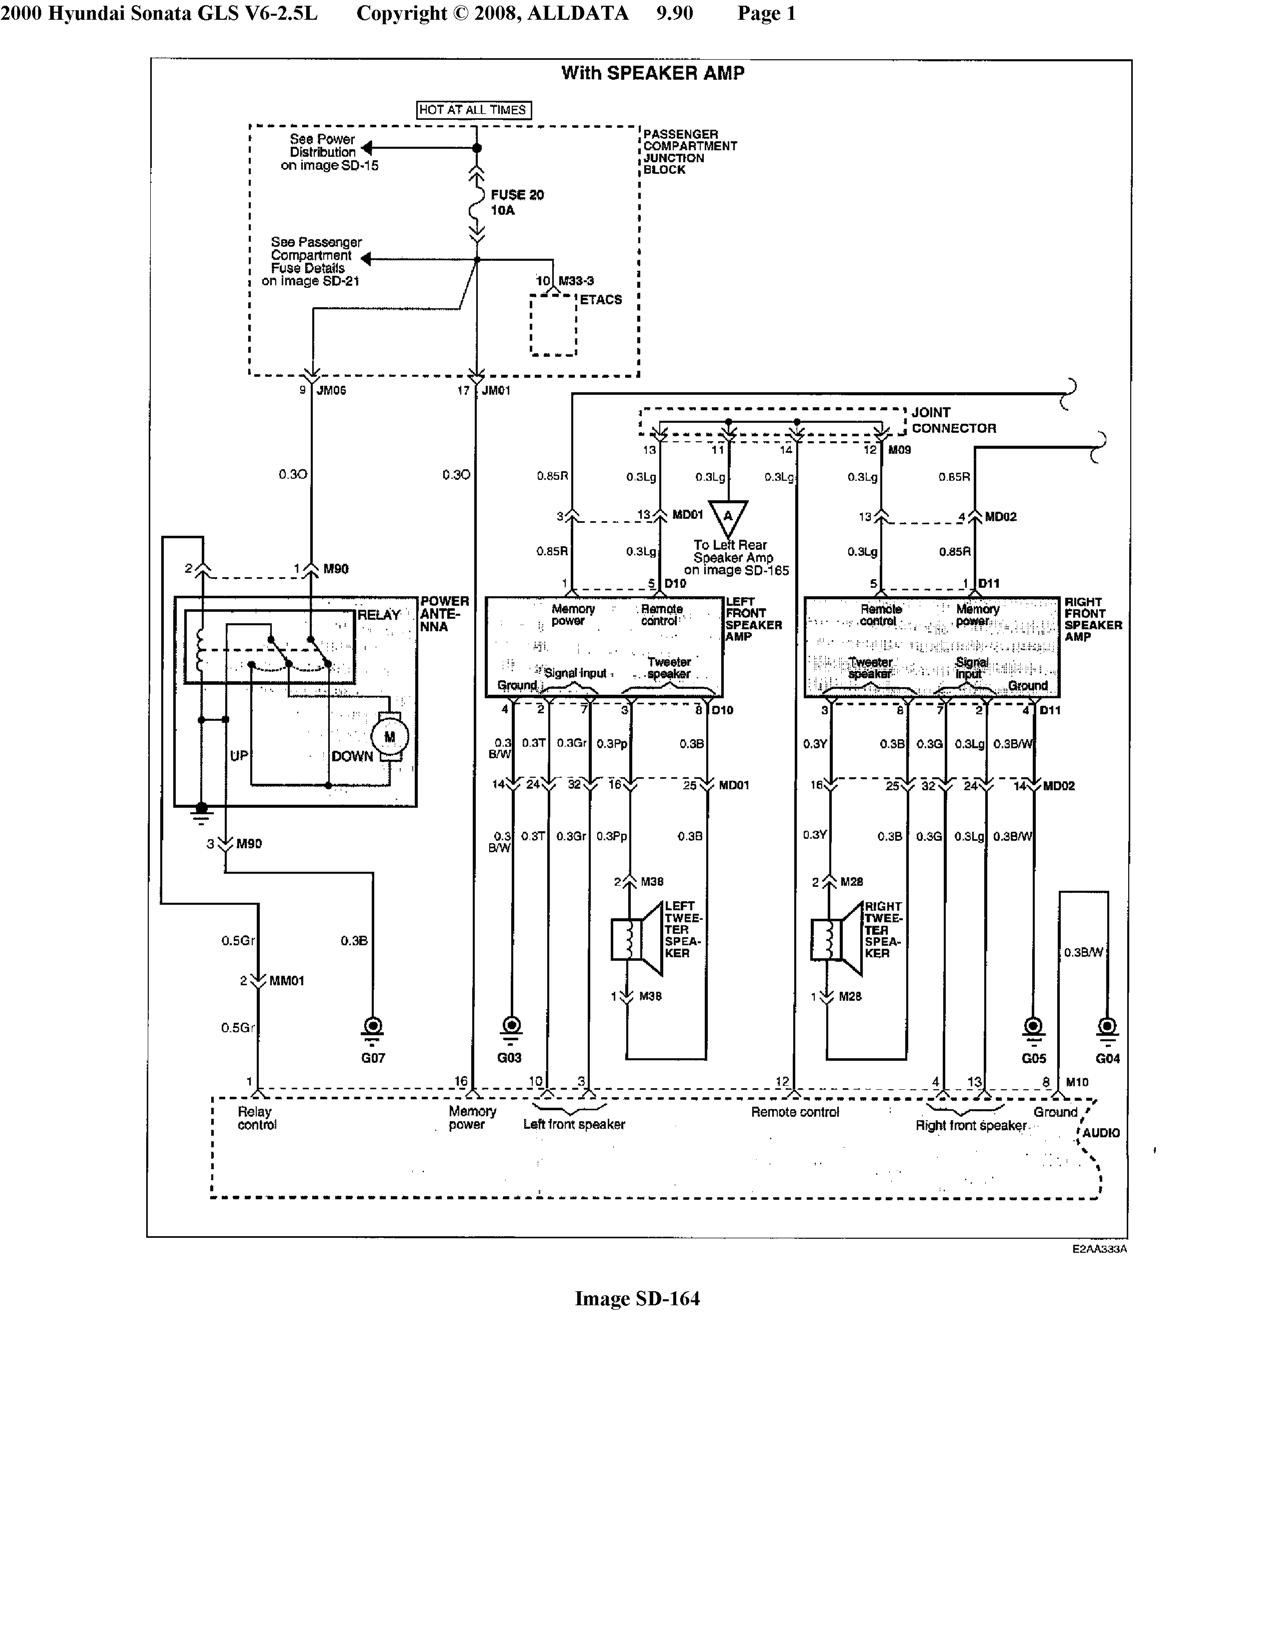 Wiring Diagram PDF: 2002 Hyundai Elantra Headlight Wiring